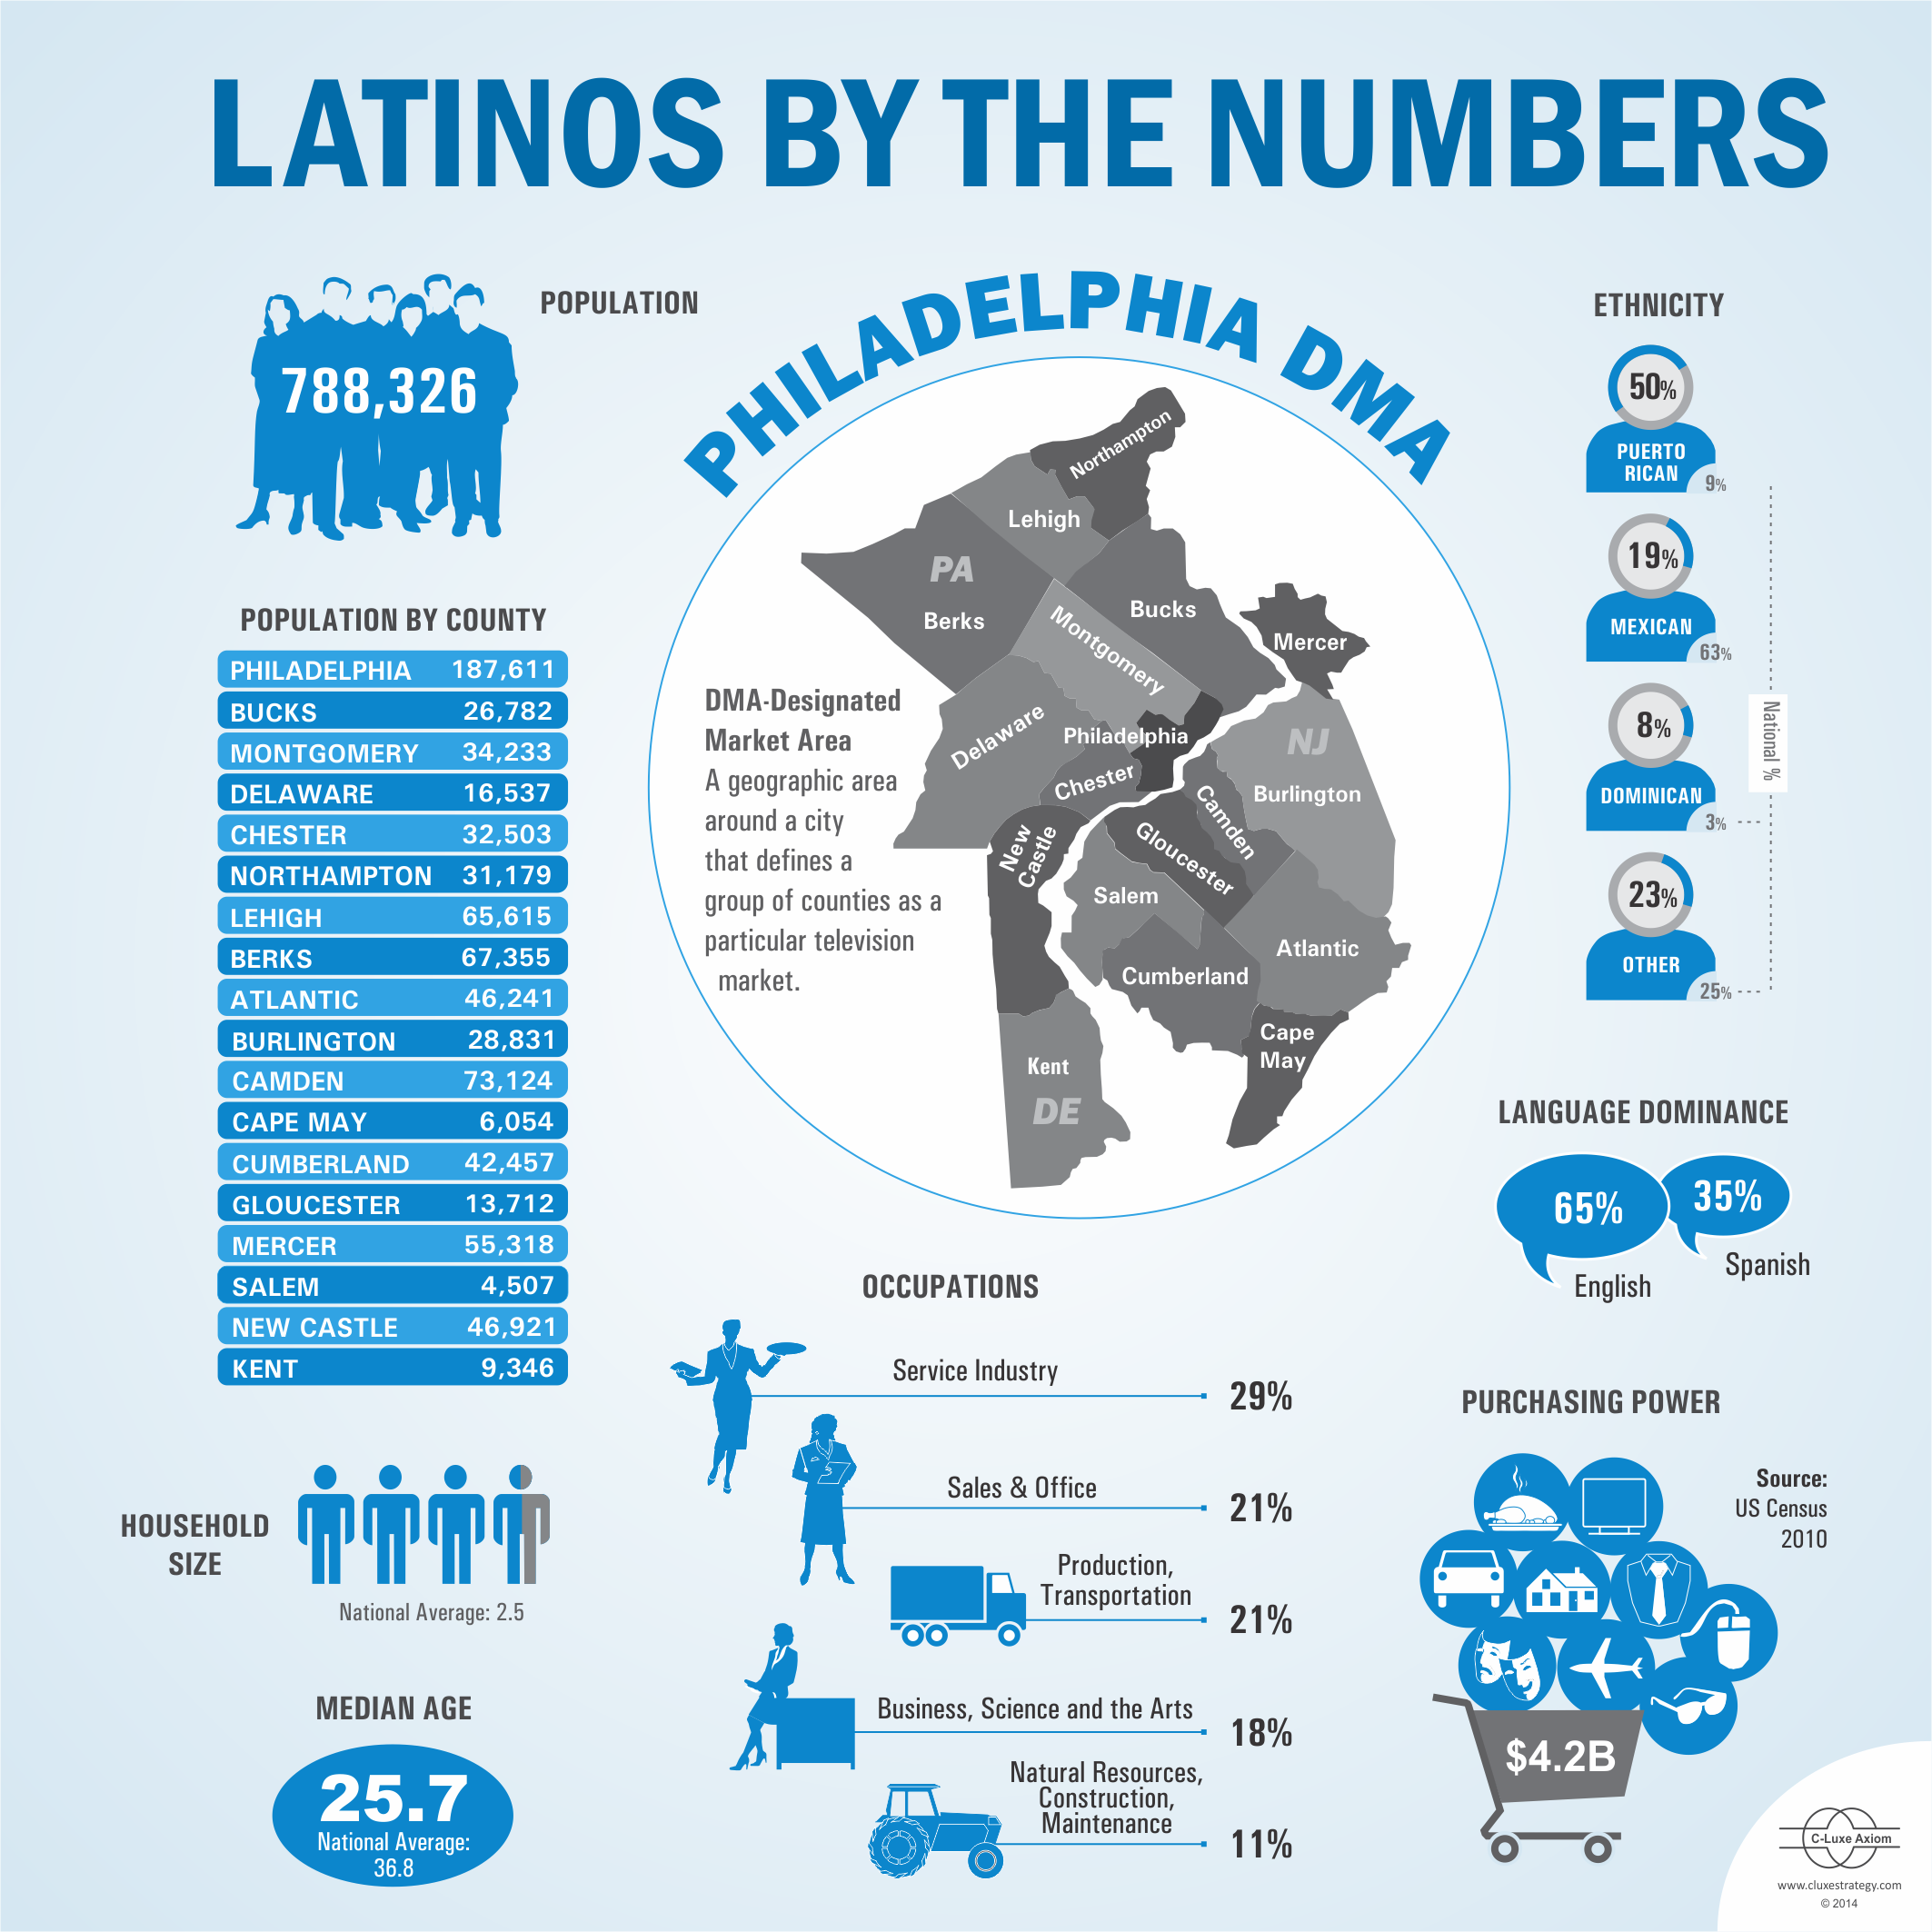 "The Latino footprint has grown and expanded in the Philly region. My data team put this ""infographic"" together to better illustrate the impact of Latinos in the region. Ask me about the stories behind the numbers."